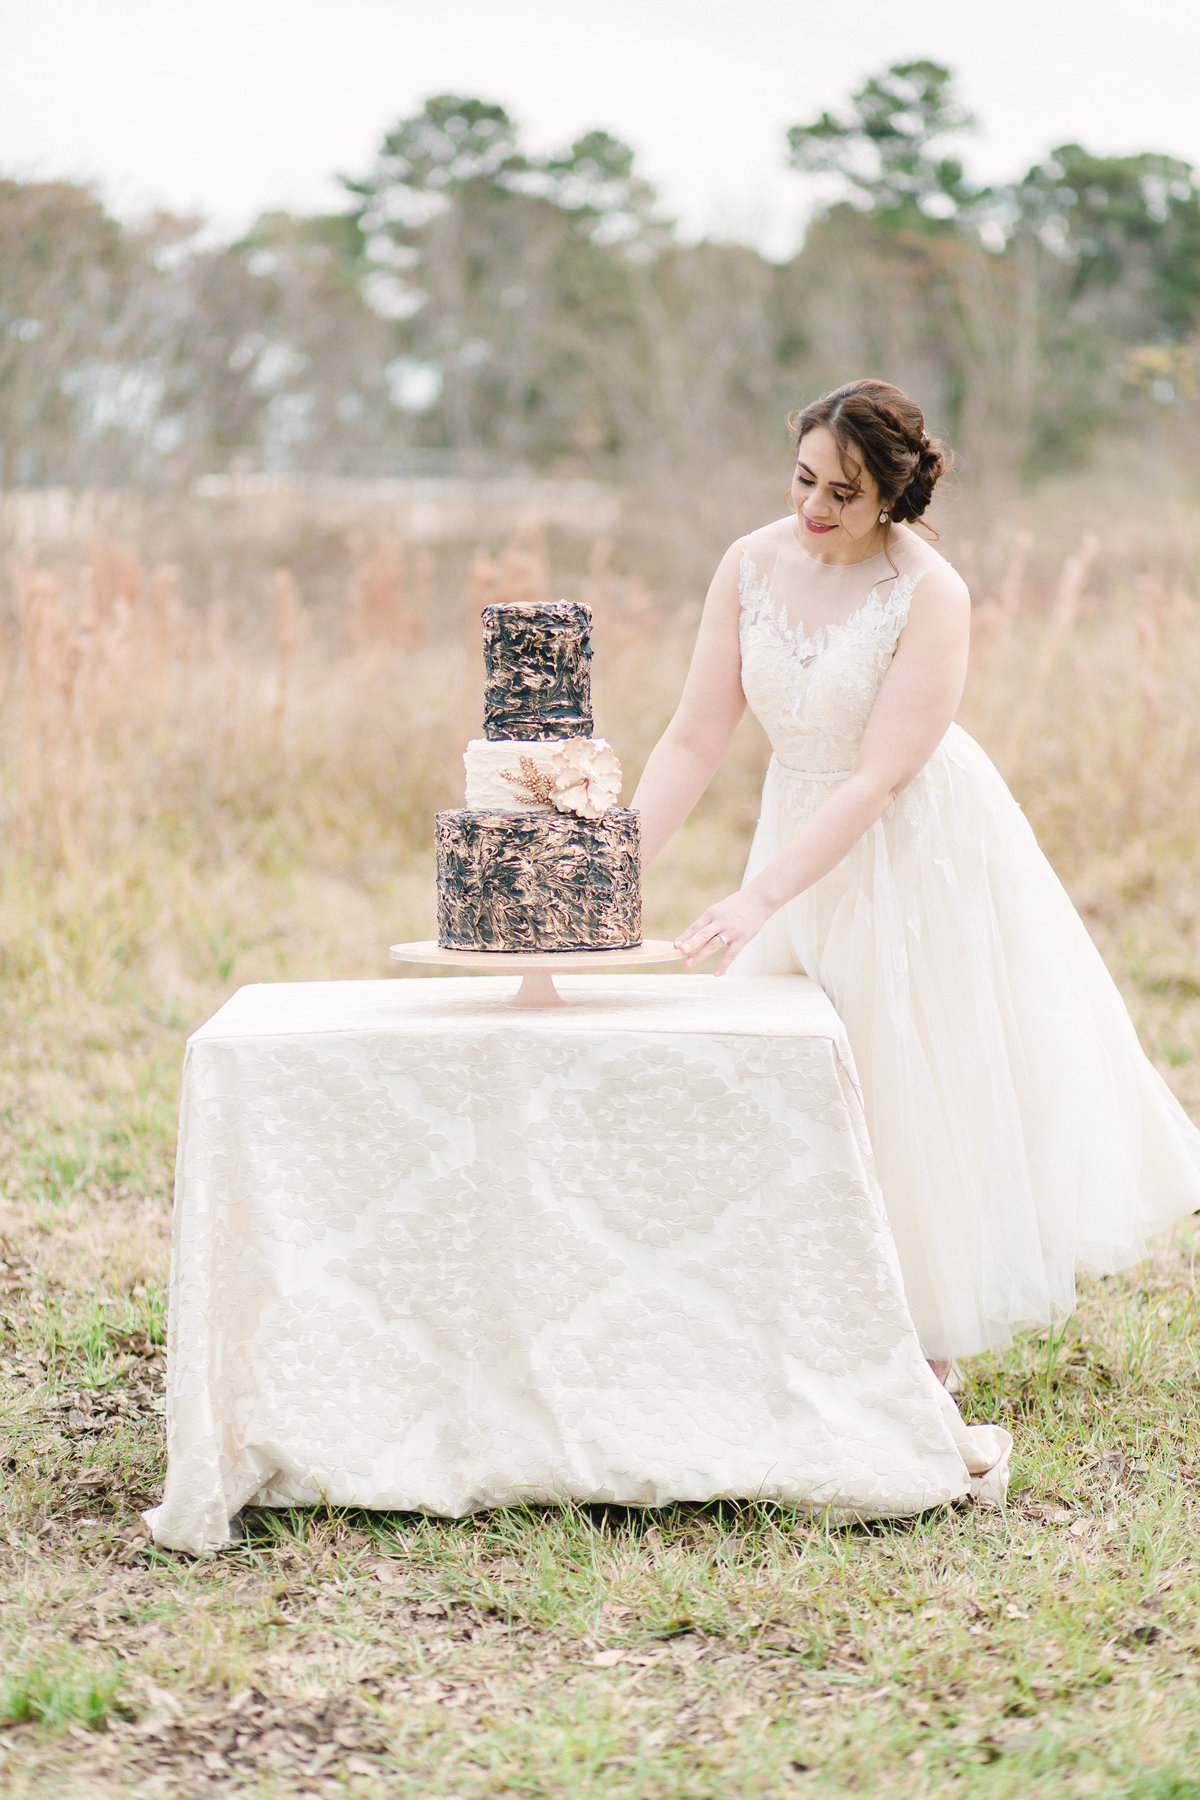 The-woodlands-bridal-session-alicia-yarrish-photography-52